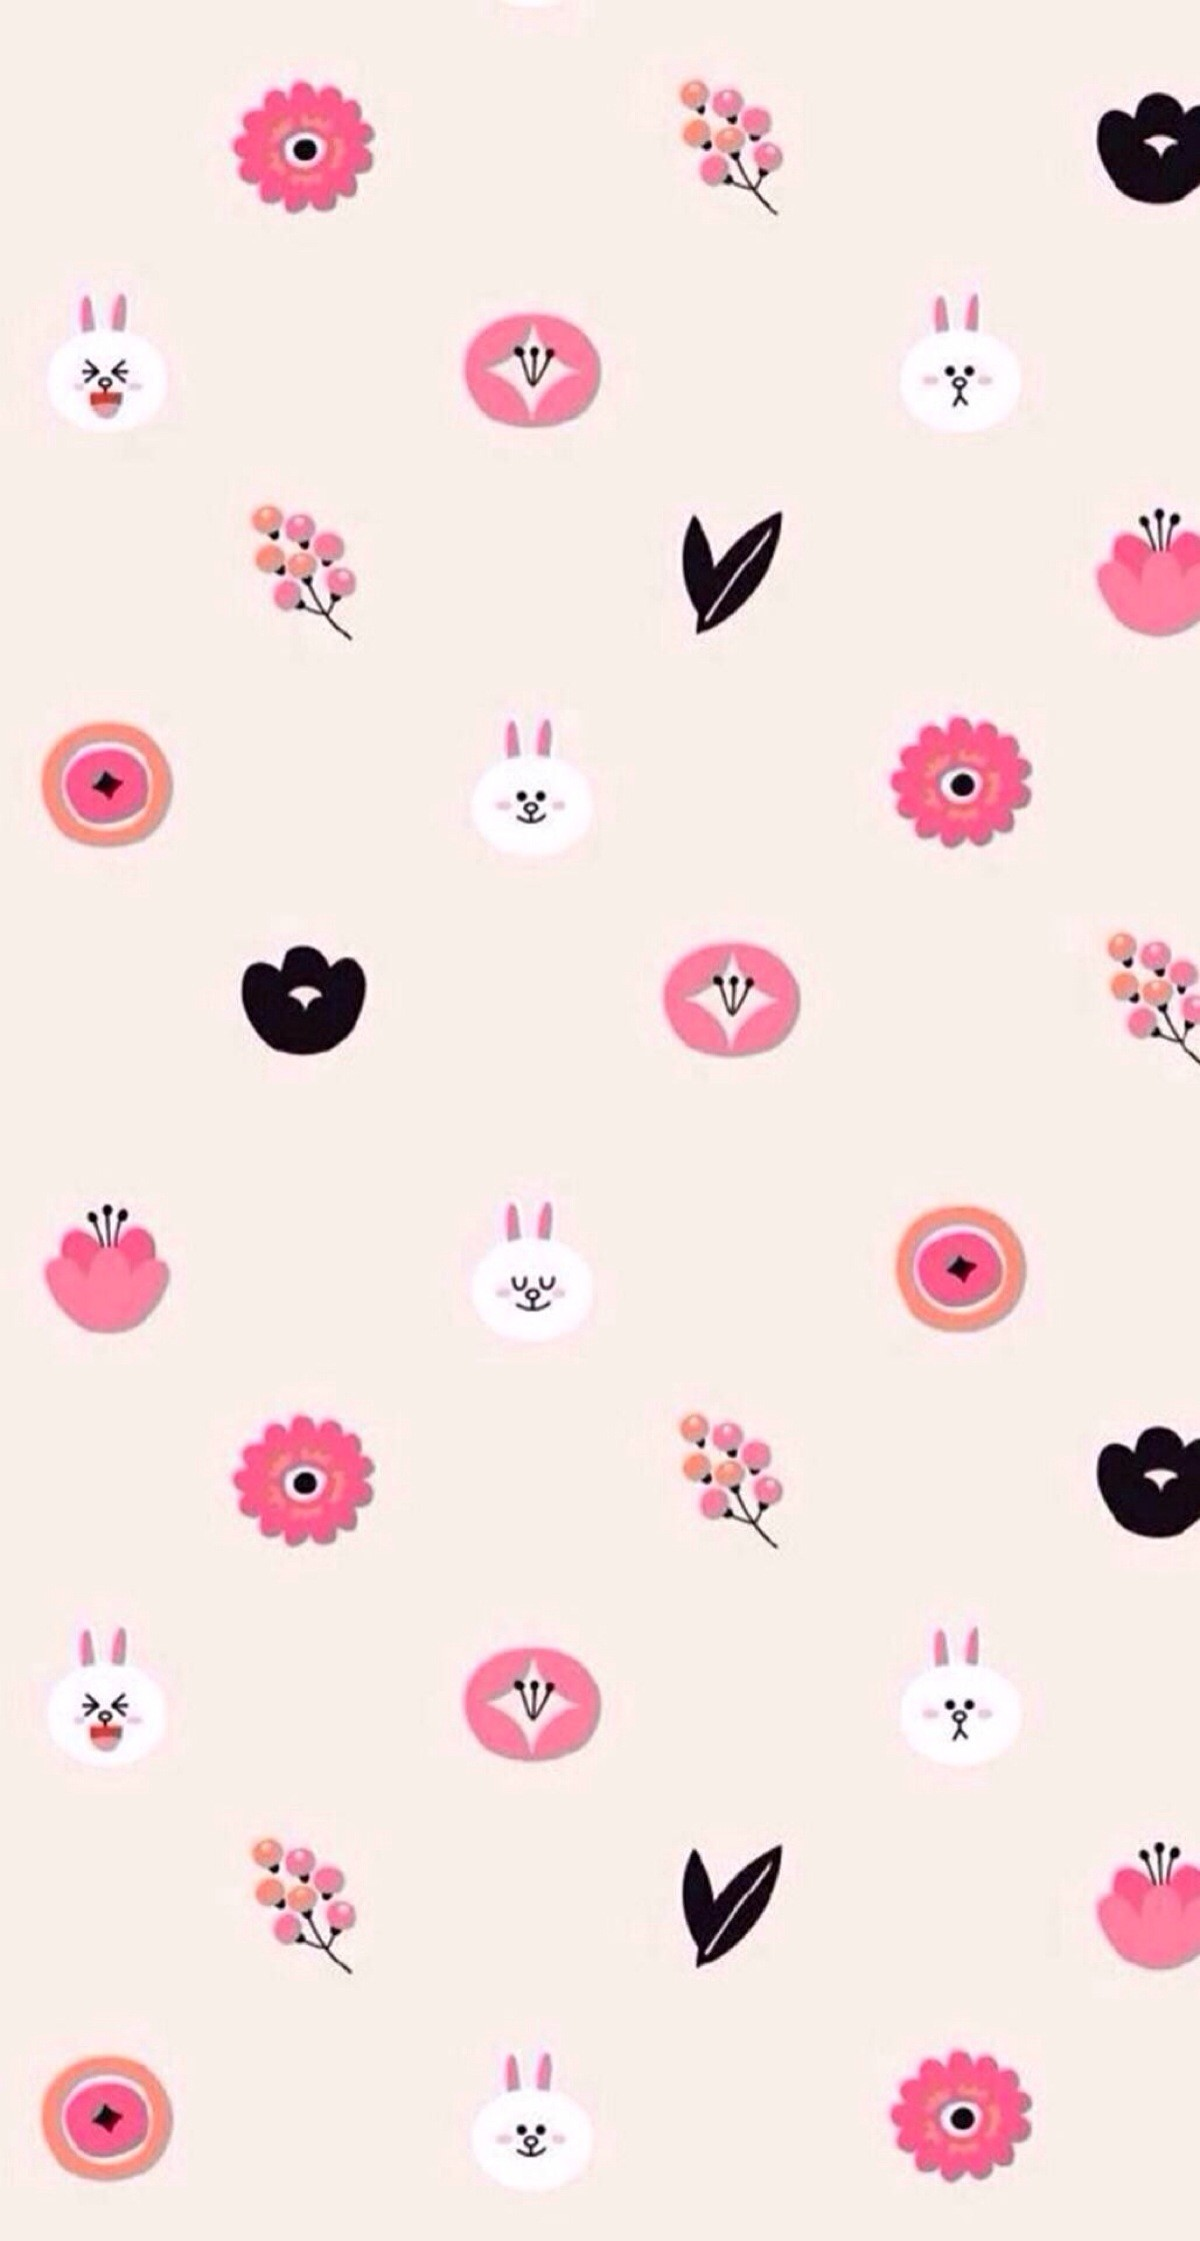 Cute Kawaii Wallpaper For Iphone 82 Images